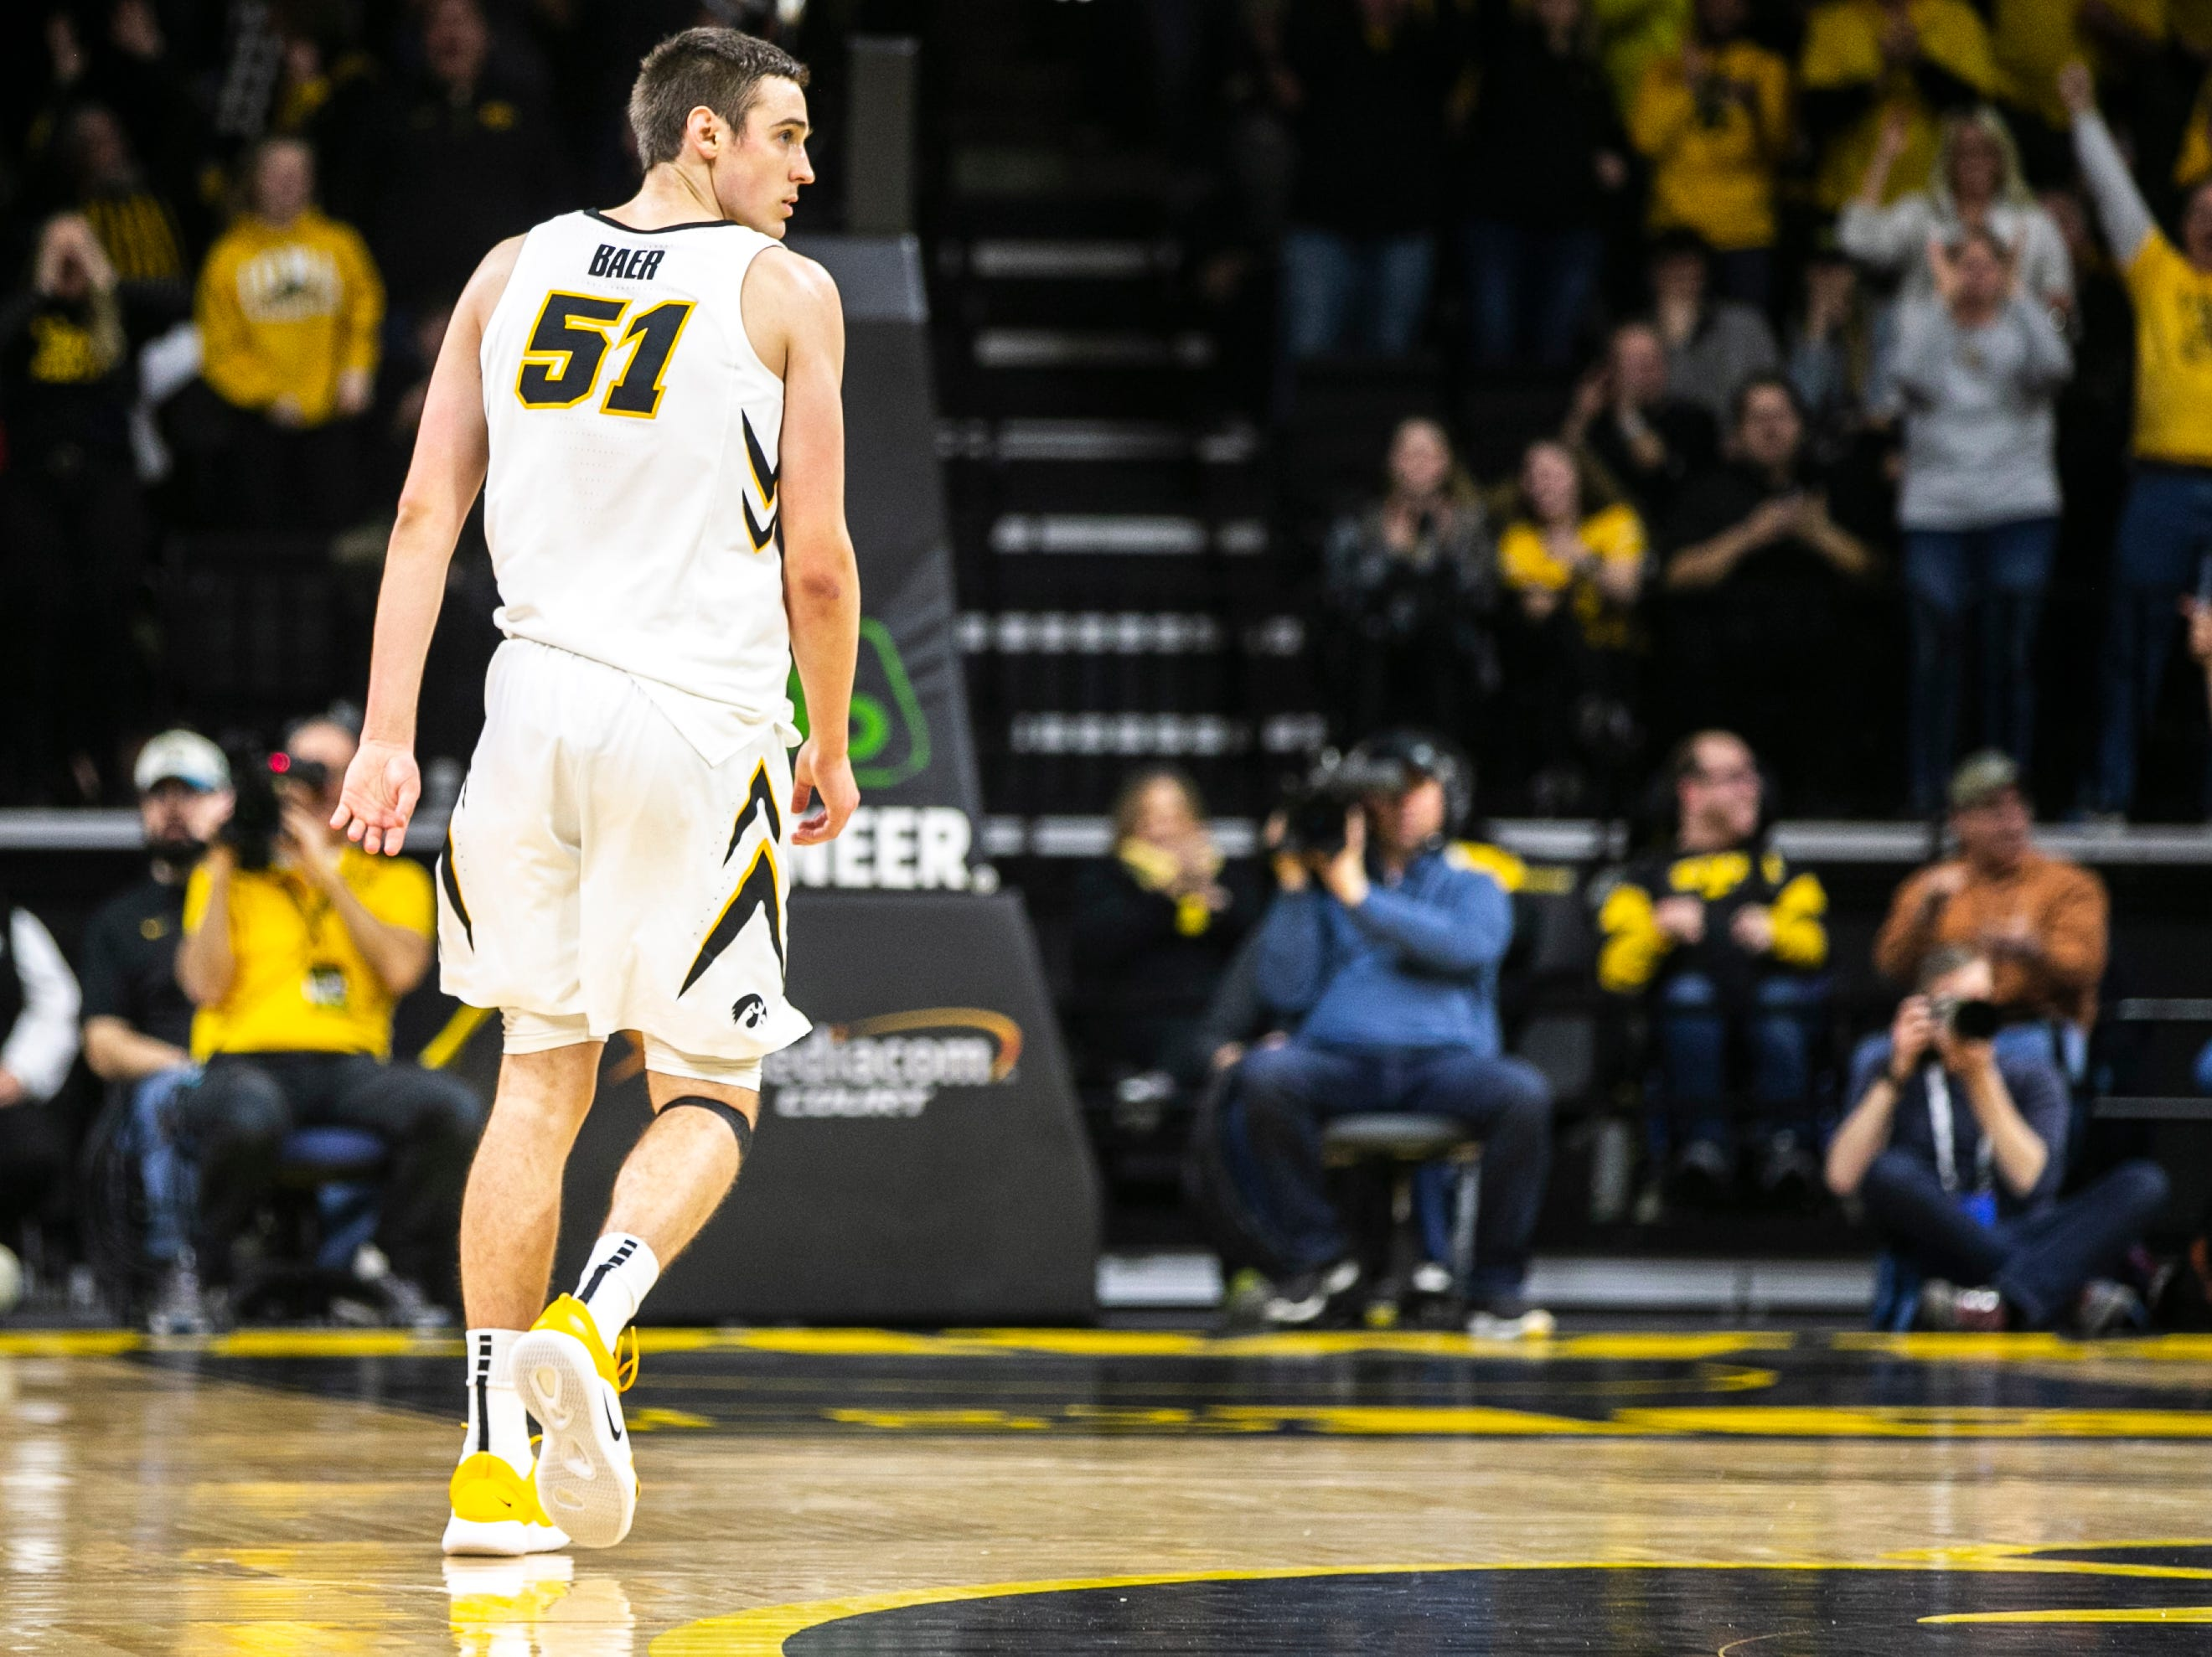 Iowa forward Nicholas Baer (51) reacts after making a 3-point basket during a NCAA Big Ten Conference men's basketball game on Friday, Feb. 1, 2019, at Carver-Hawkeye Arena in Iowa City, Iowa.